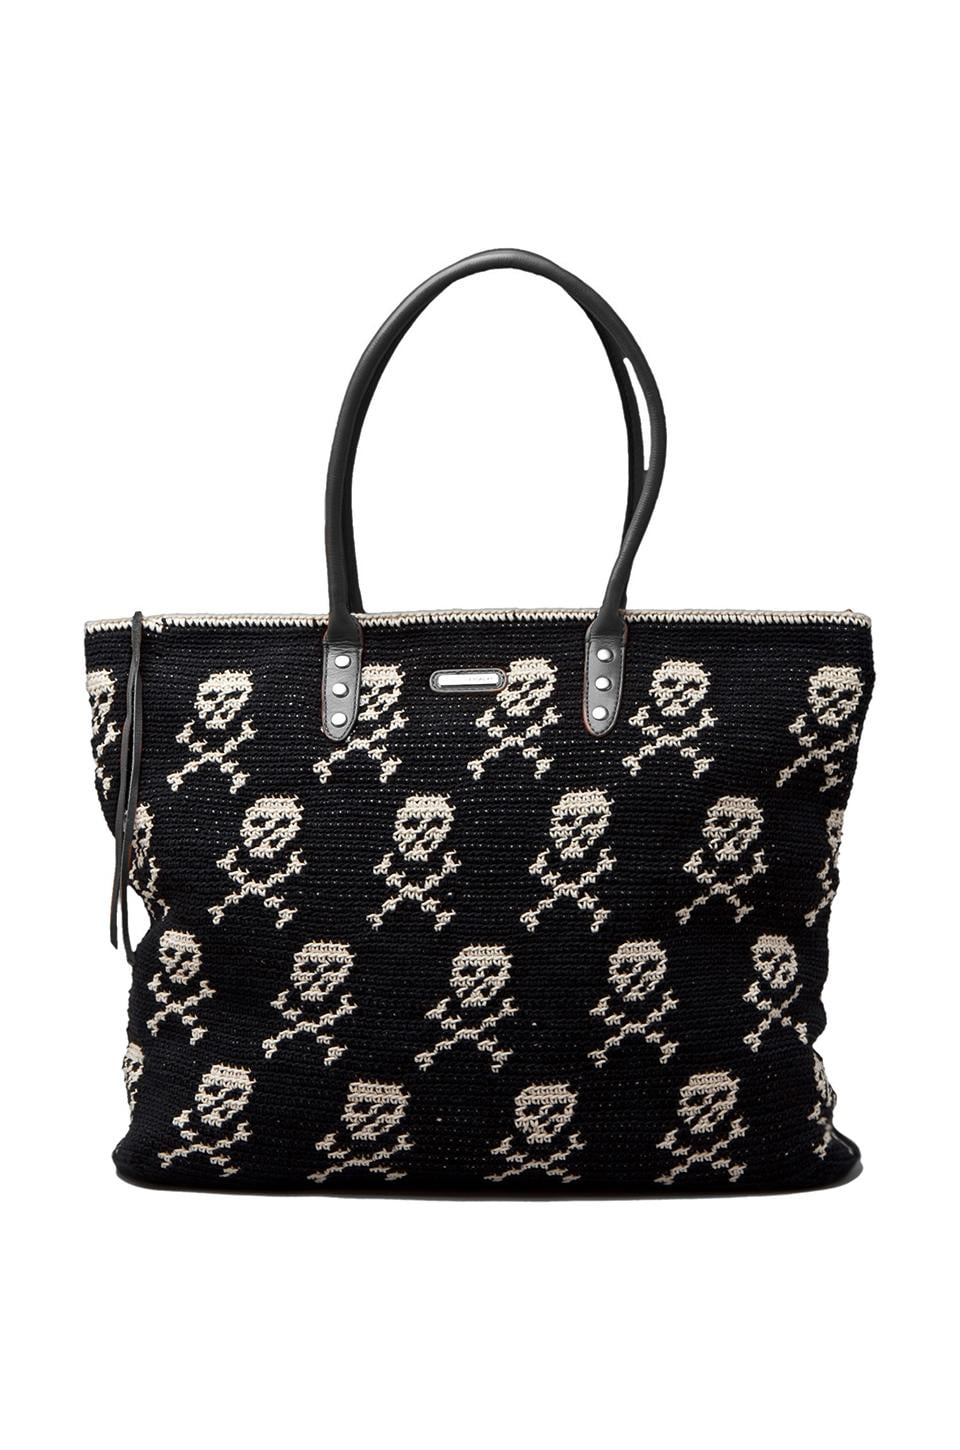 Rebecca Minkoff East West Skull Tote in Black & White